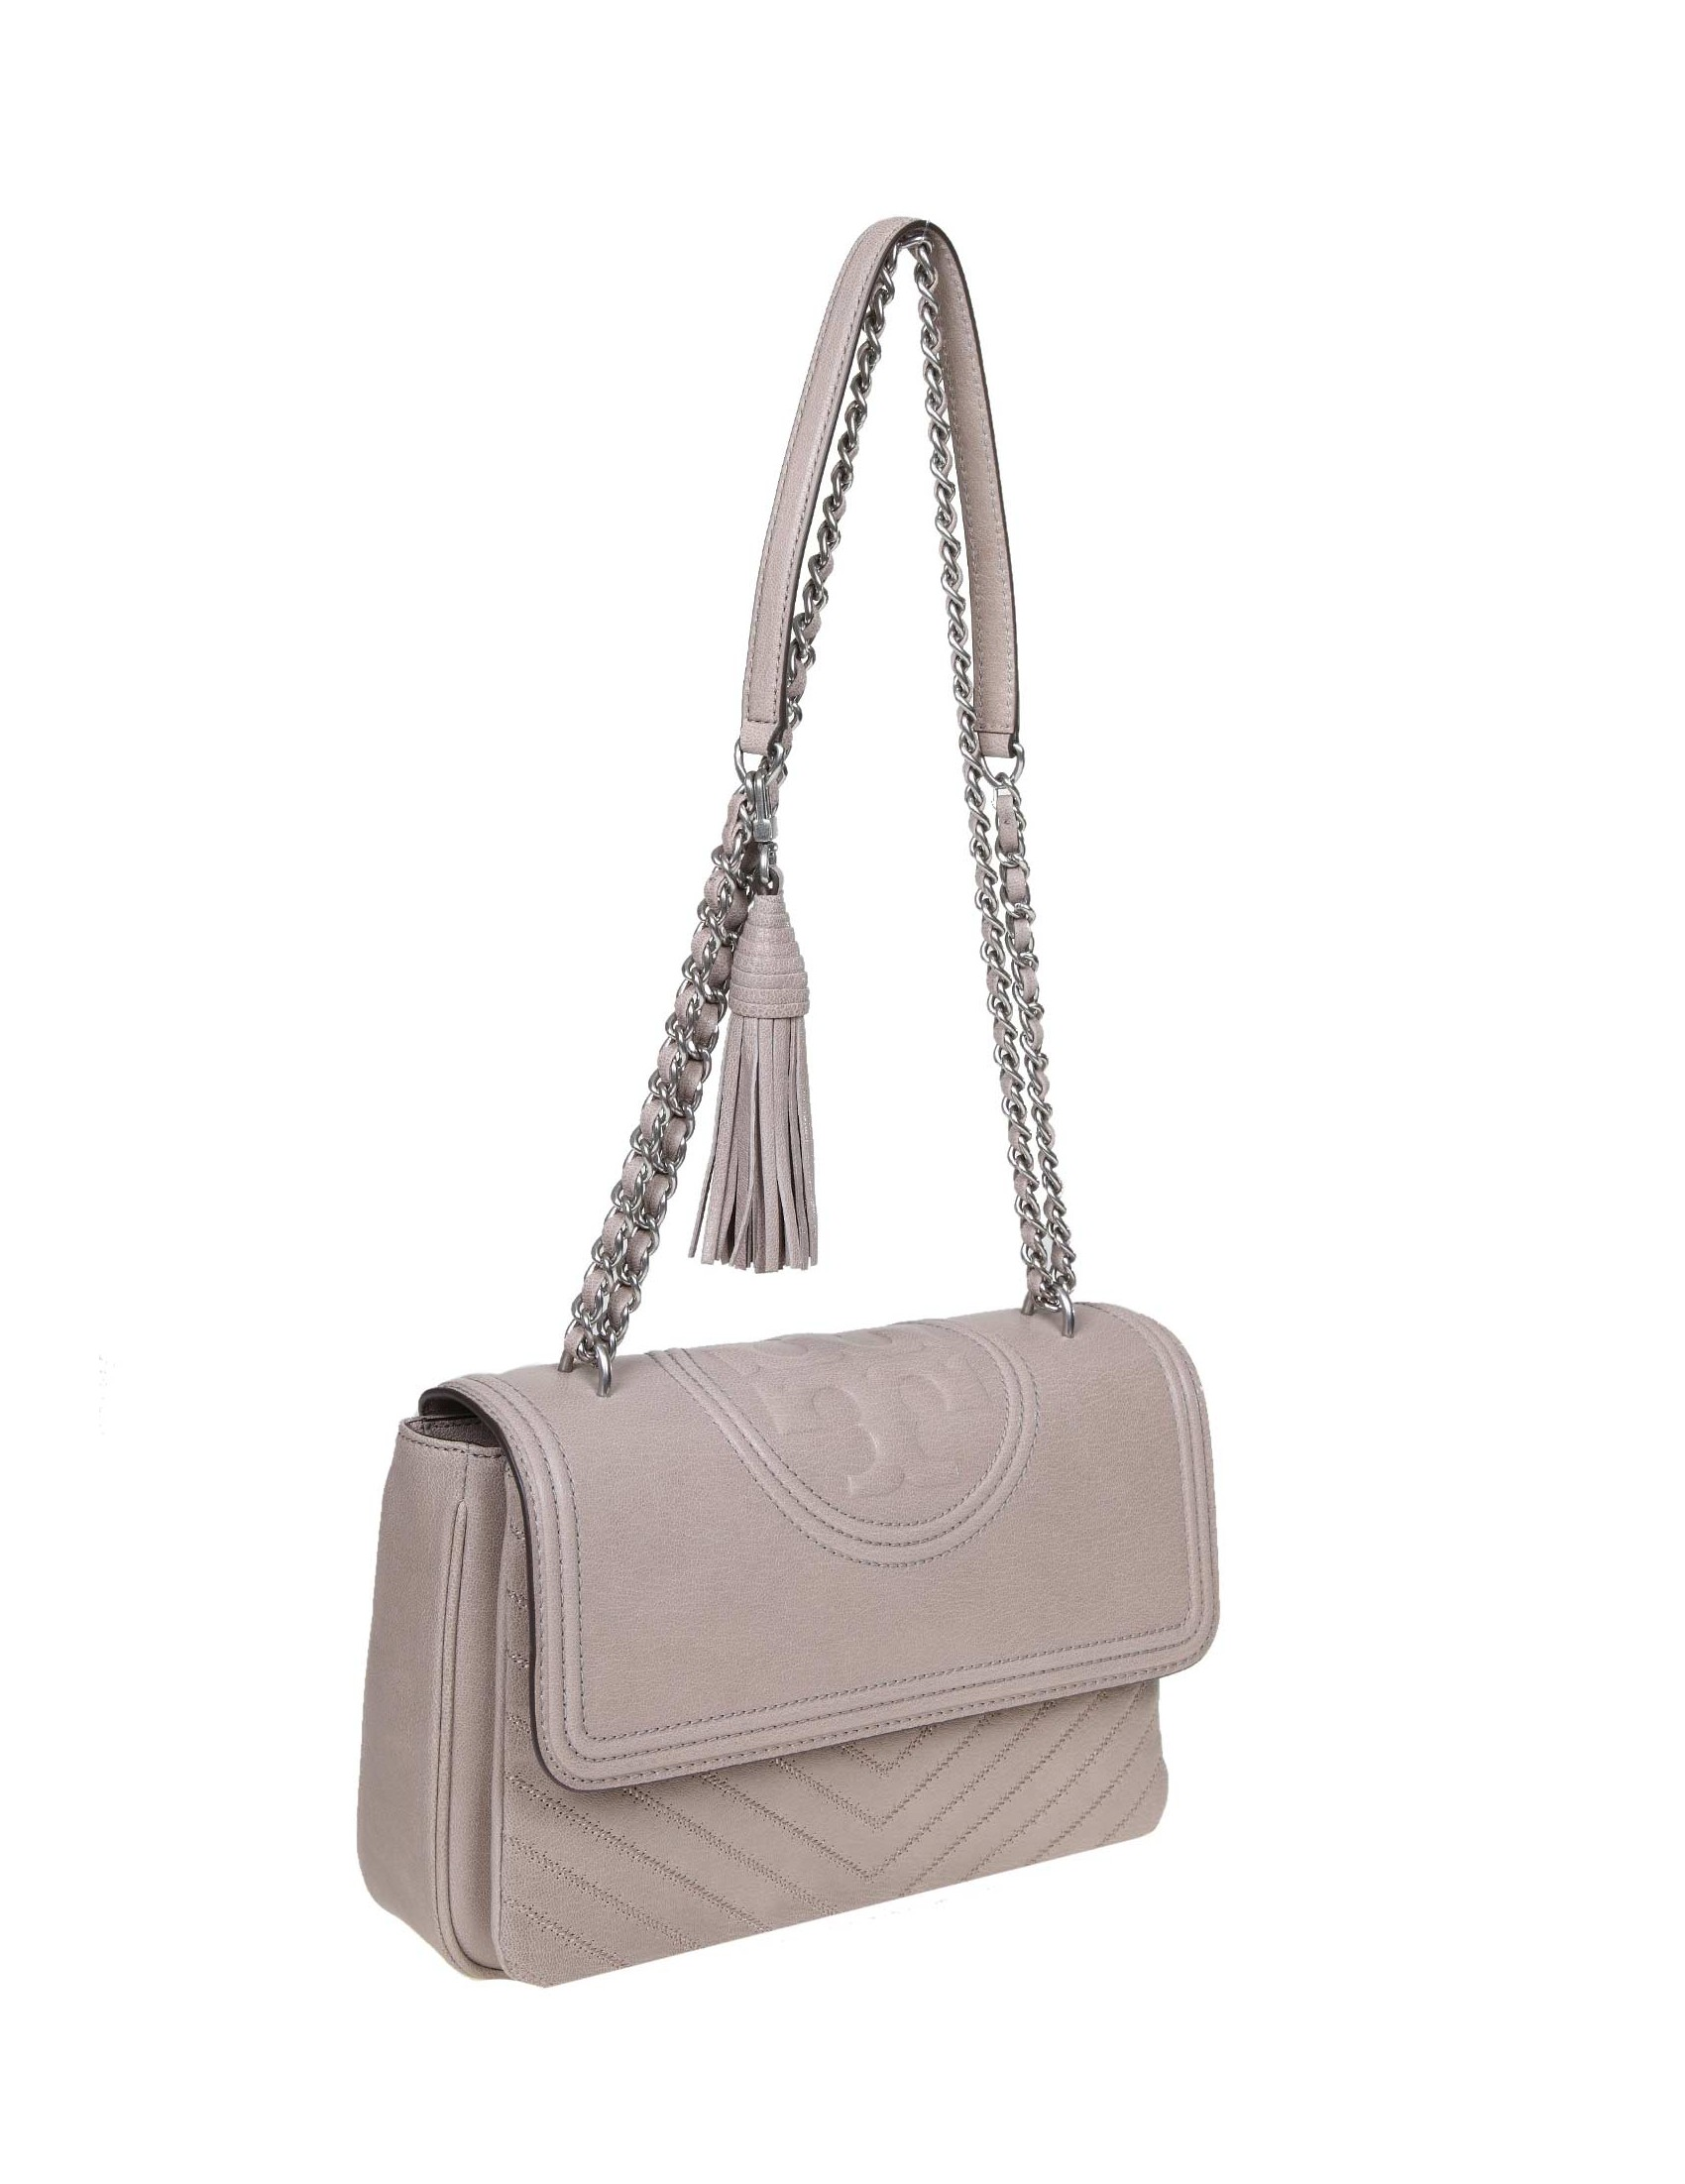 409a564c6ca ... SHOULDER BAGS · TORY BURCH FLEMING BAG DISTRESSED CONVERTIBLE LEATHER  COLOR BEIGE. prev